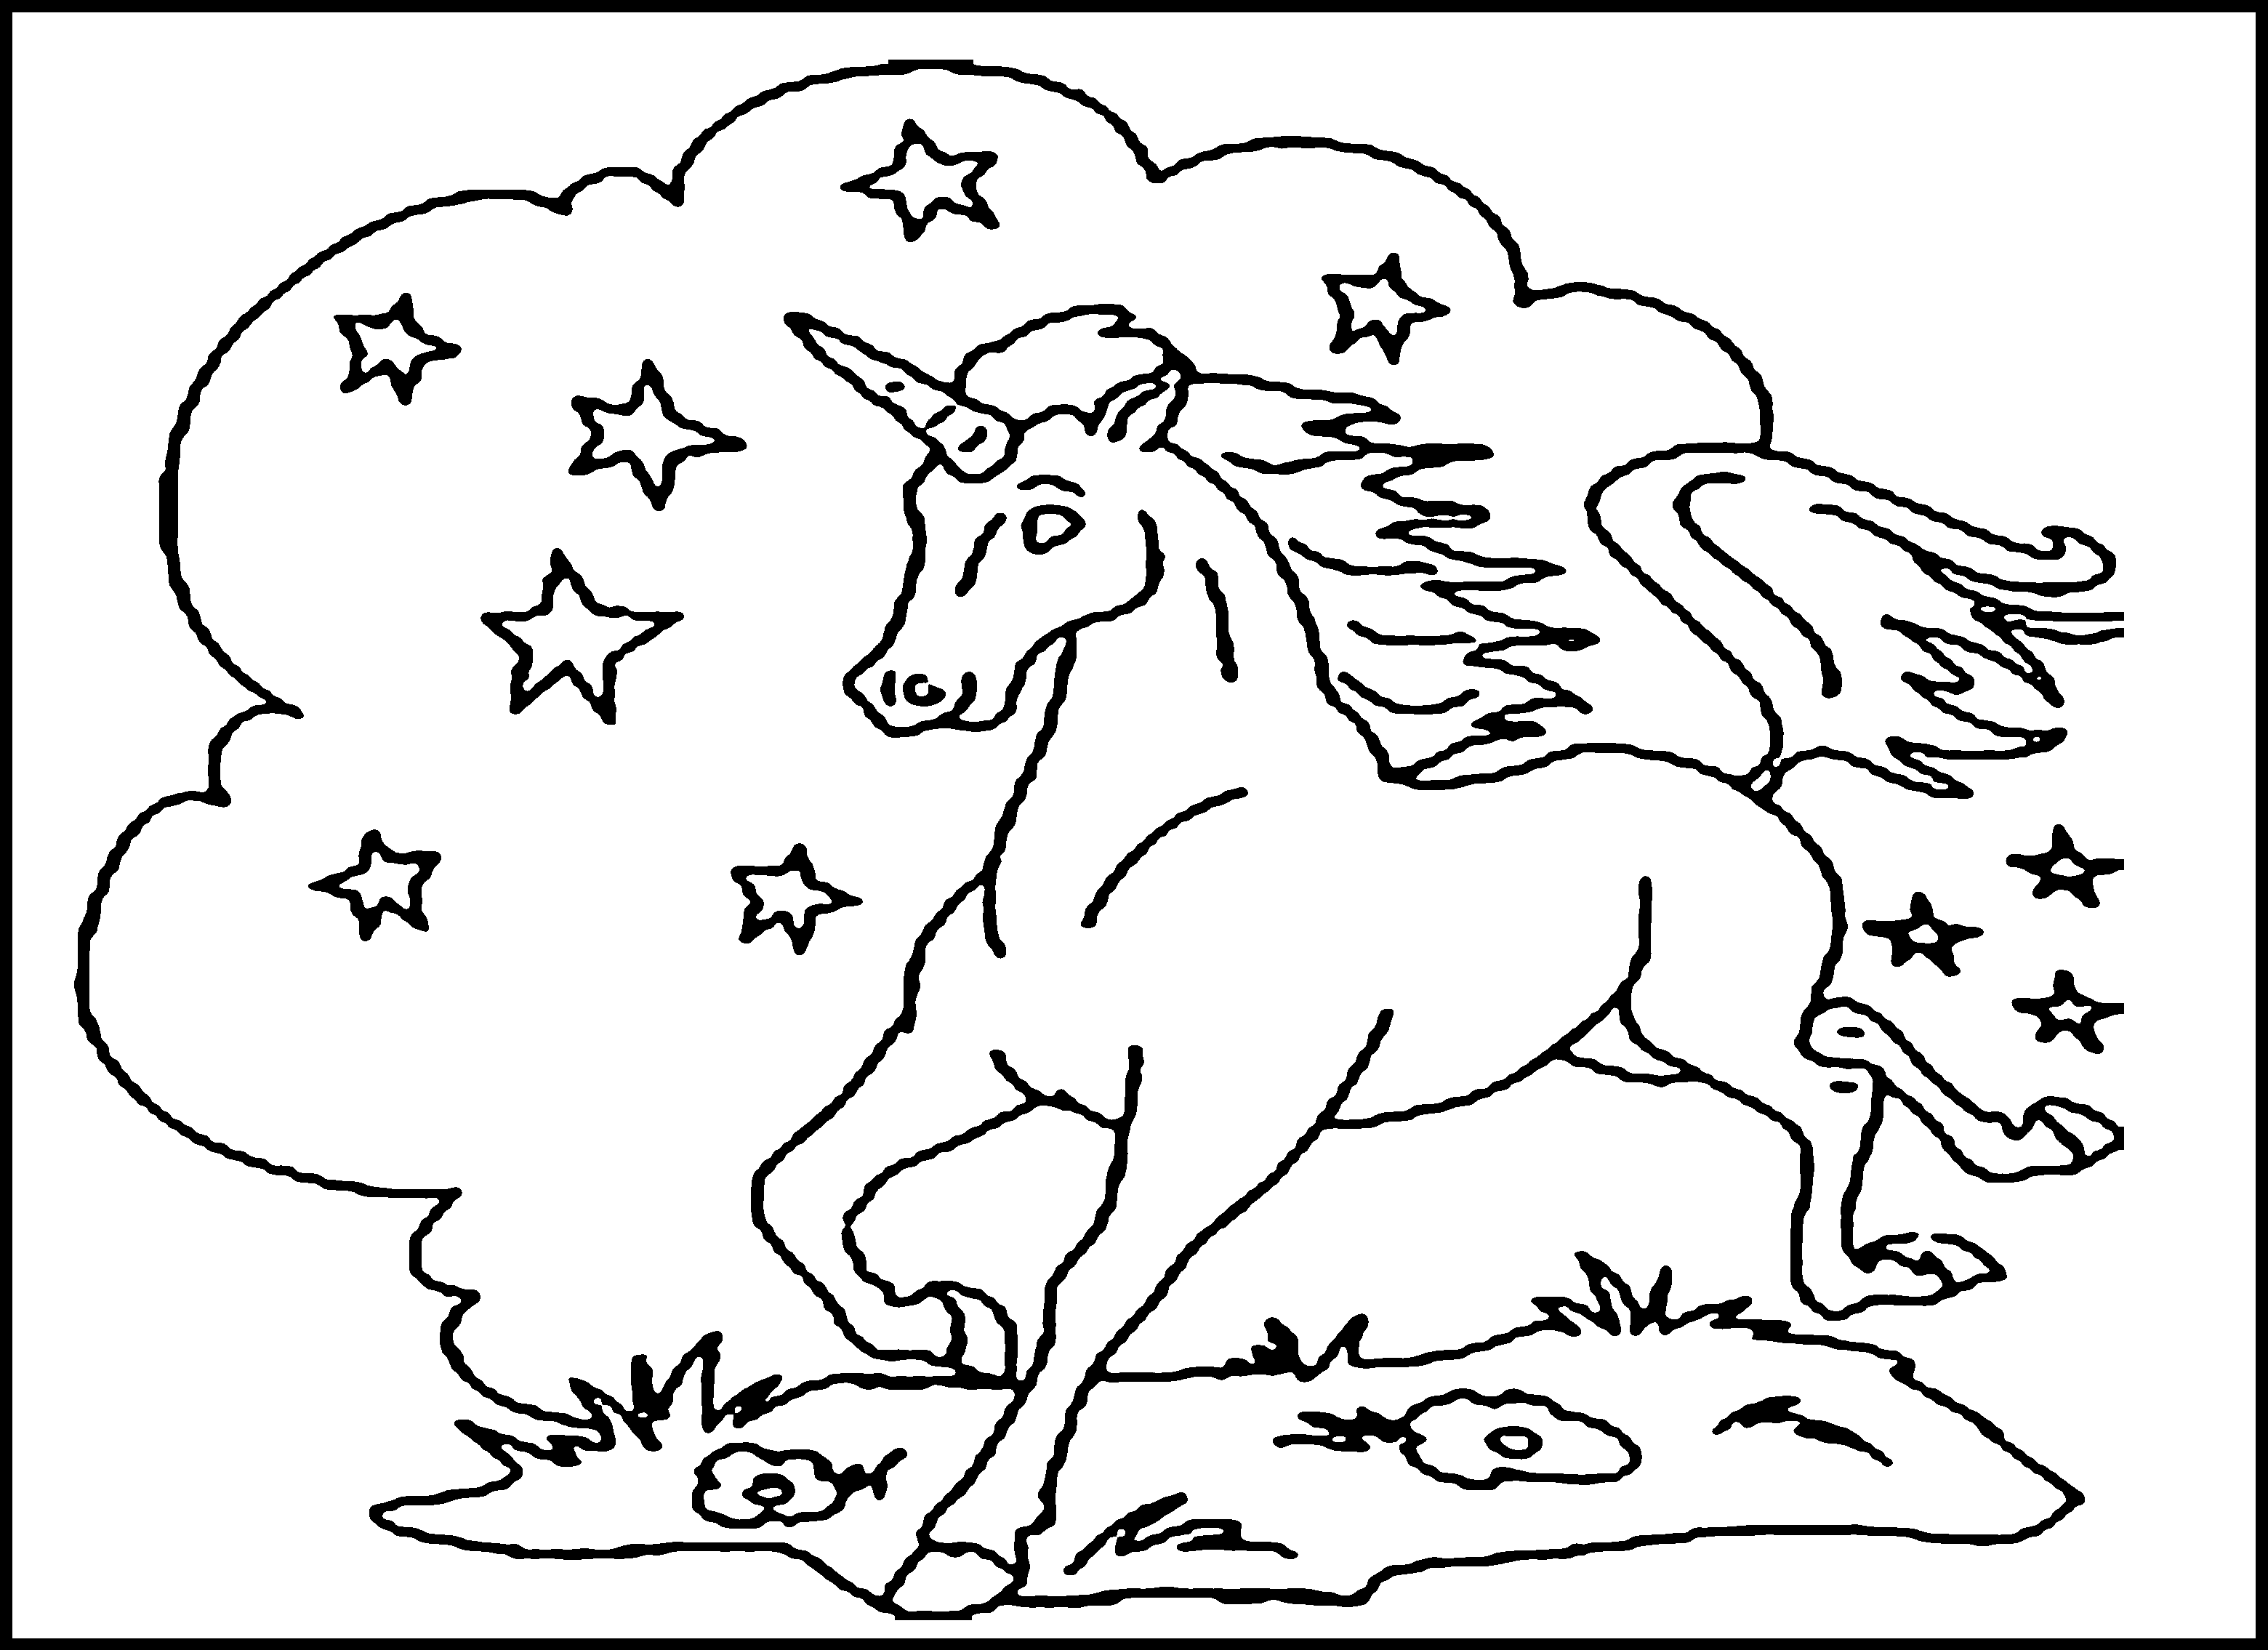 unicorn printable coloring pages - Colour In For Kids